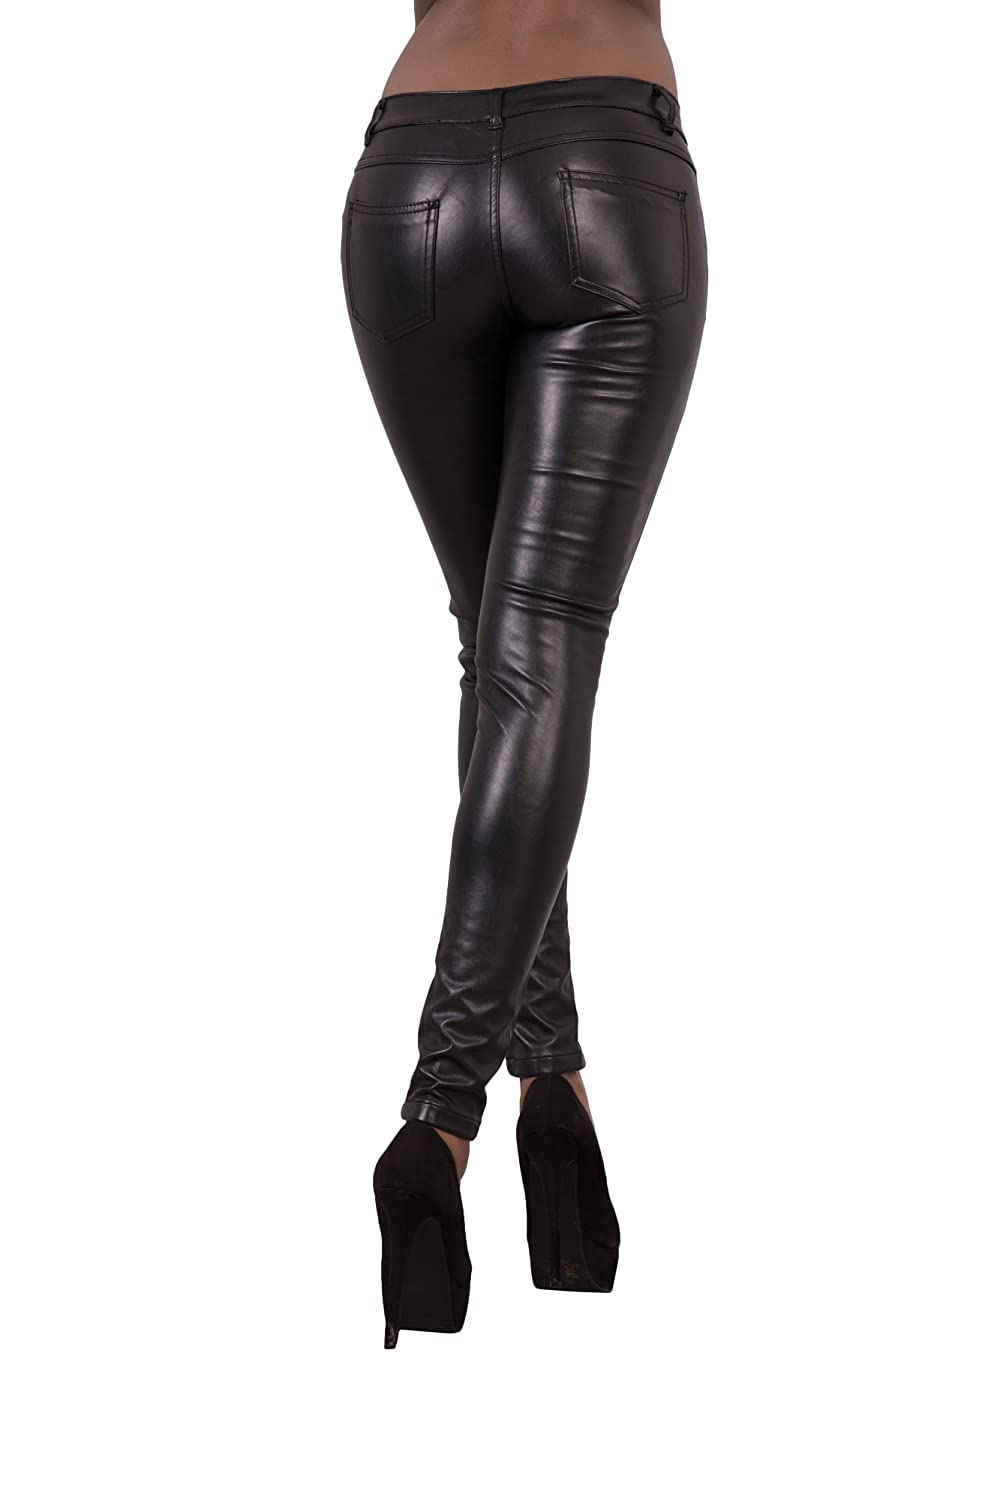 94379e4f1d50 LustyChic Womens Leather Look Trousers Slim Fit Ladies Stretch Skinny Jeans  Size UK 8-16  Amazon.co.uk  Clothing